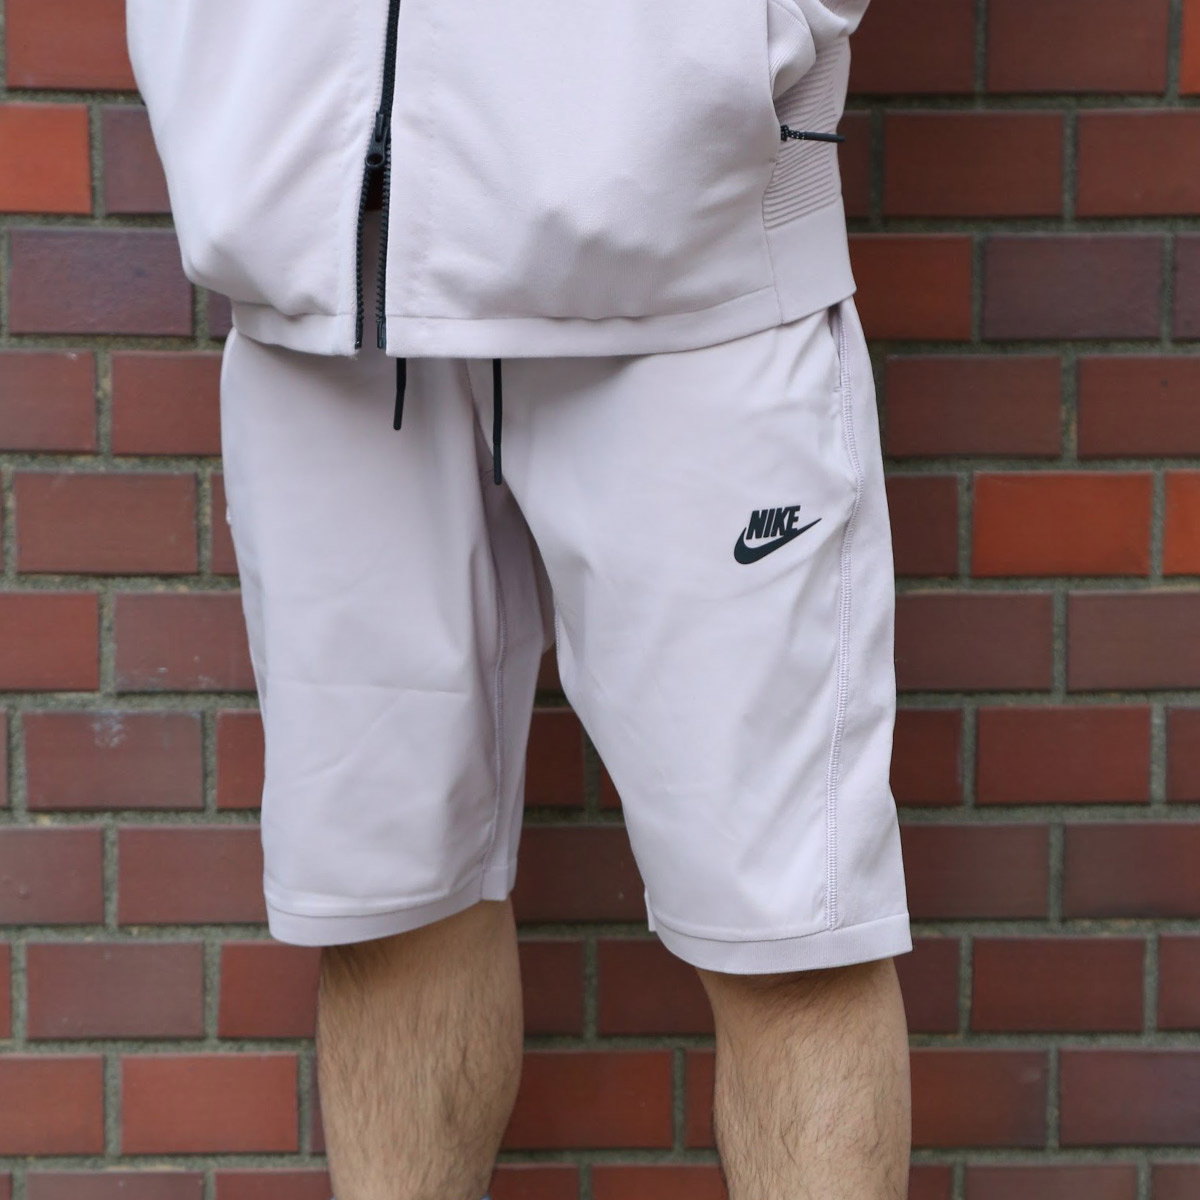 NIKE AS M NSW TCH KNT SHORT(ナイキ テック ニット ショート)(PARTICLE ROSE/BLACK)【メンズ】18SU-S